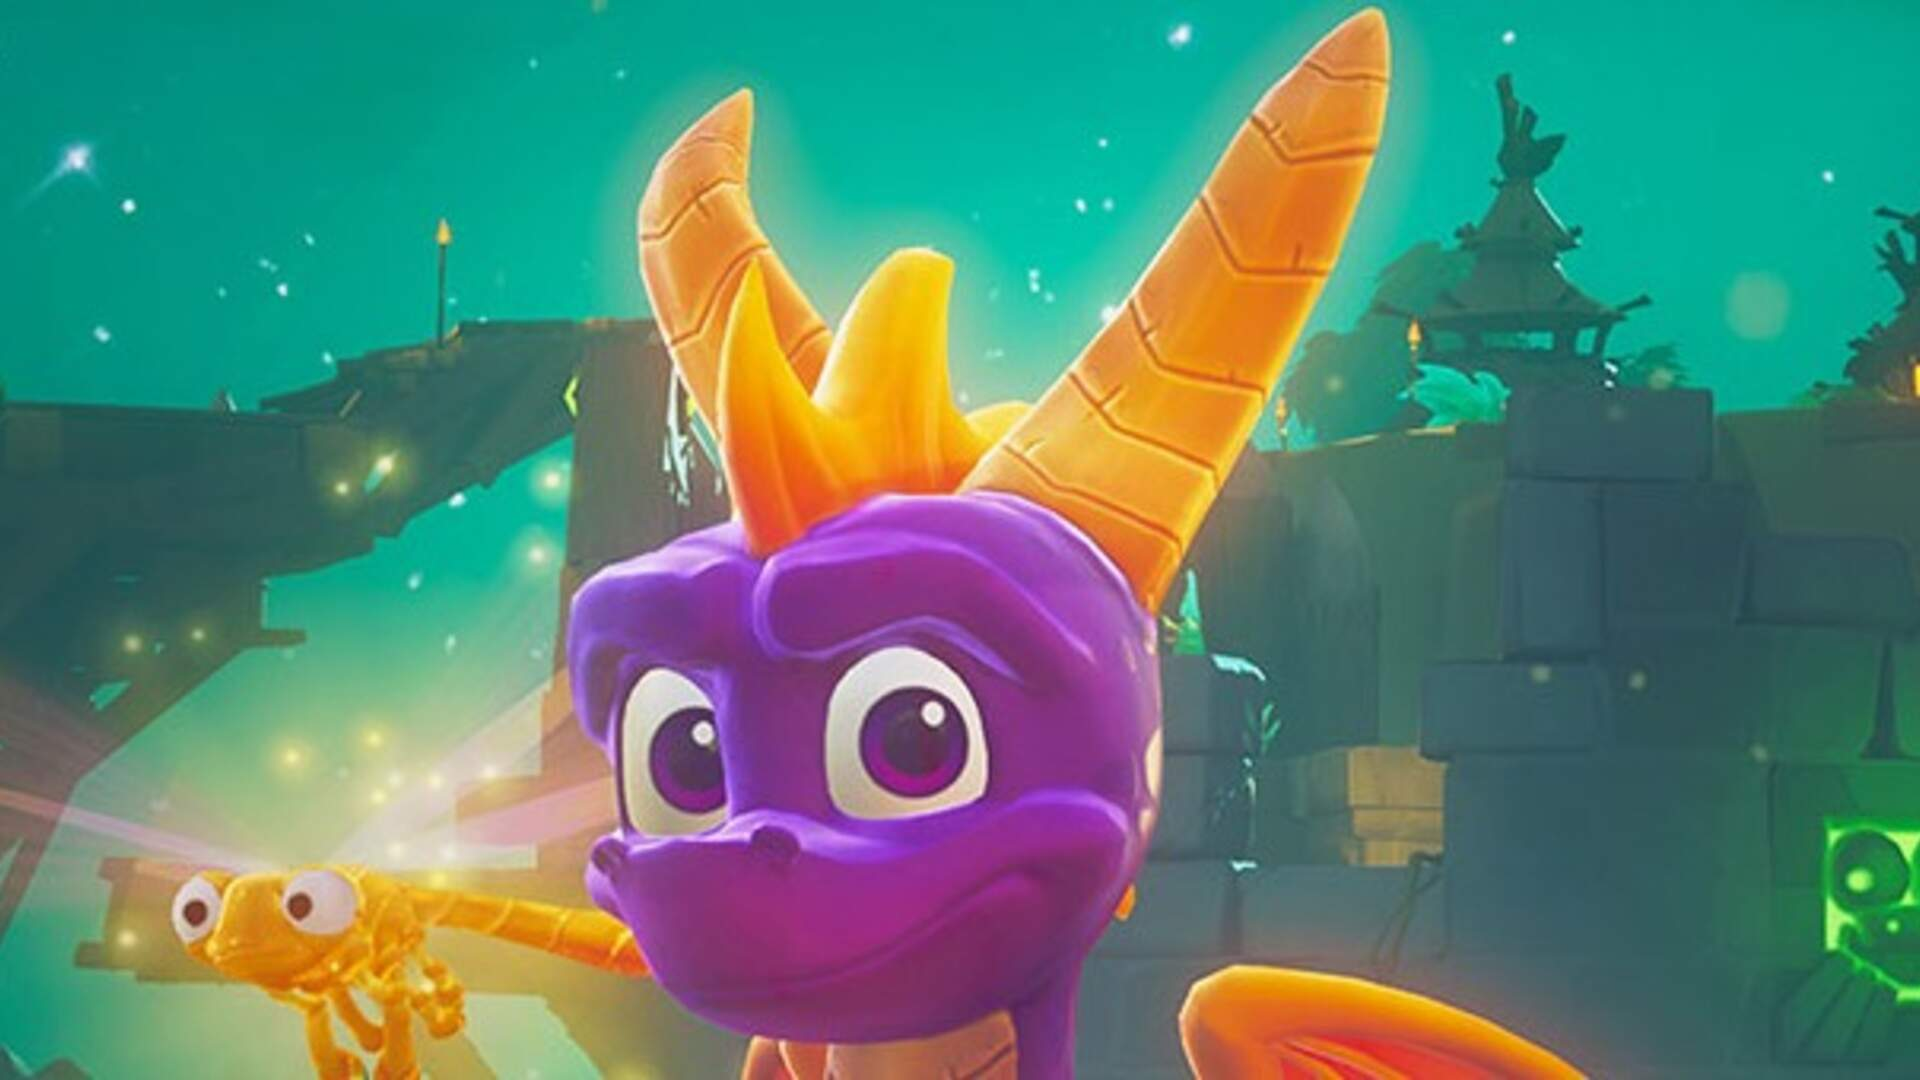 Spyro Reignited Trilogy Delayed, Now Releasing Same Week as Hitman 2, Fallout 76 and Pokemon Let's Go